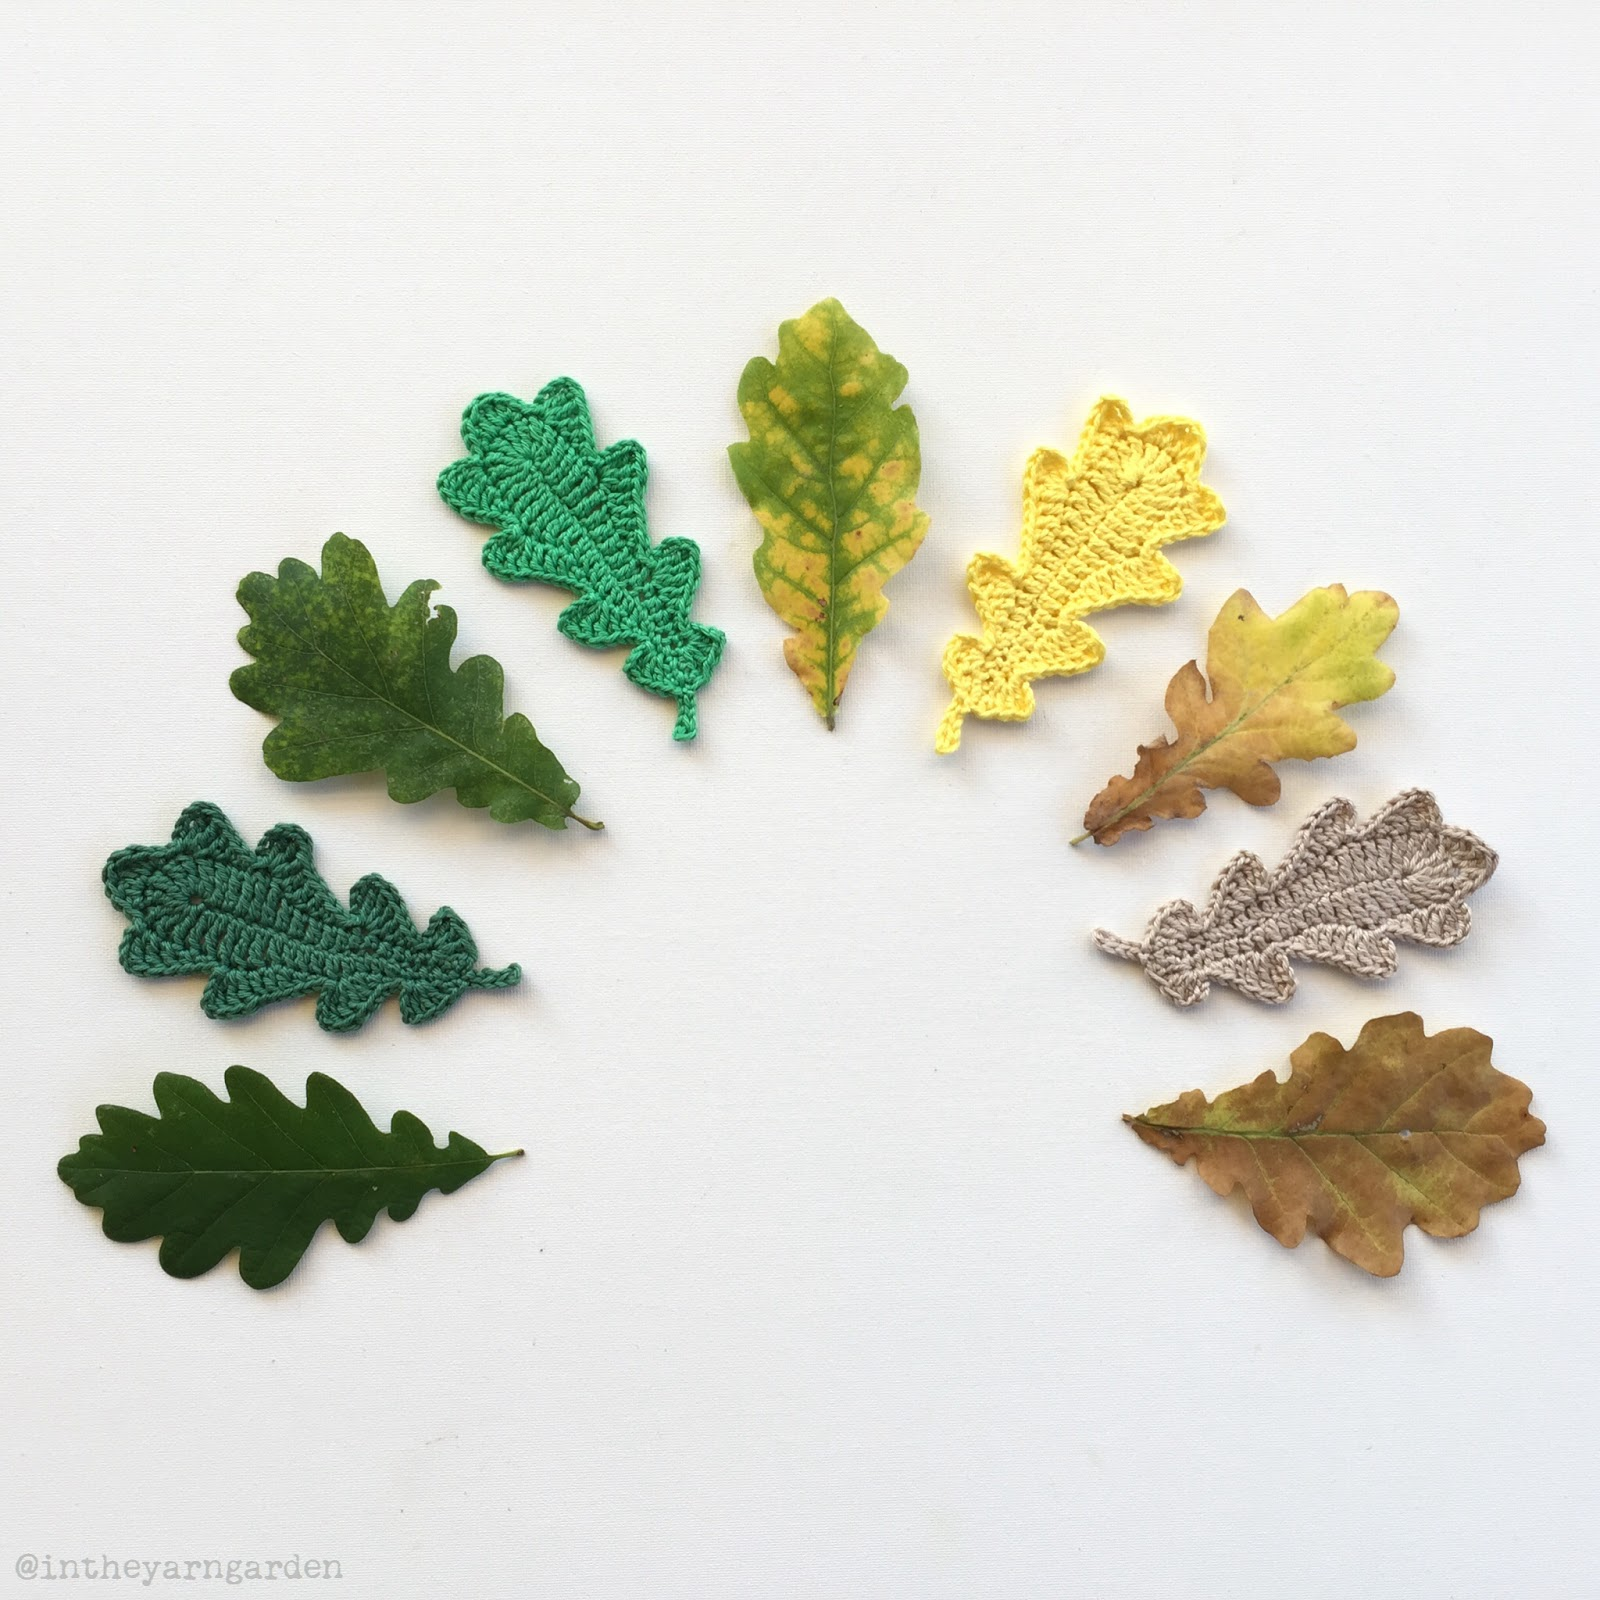 Crocheting Leaves : In the Yarn Garden: Crochet oak leaves